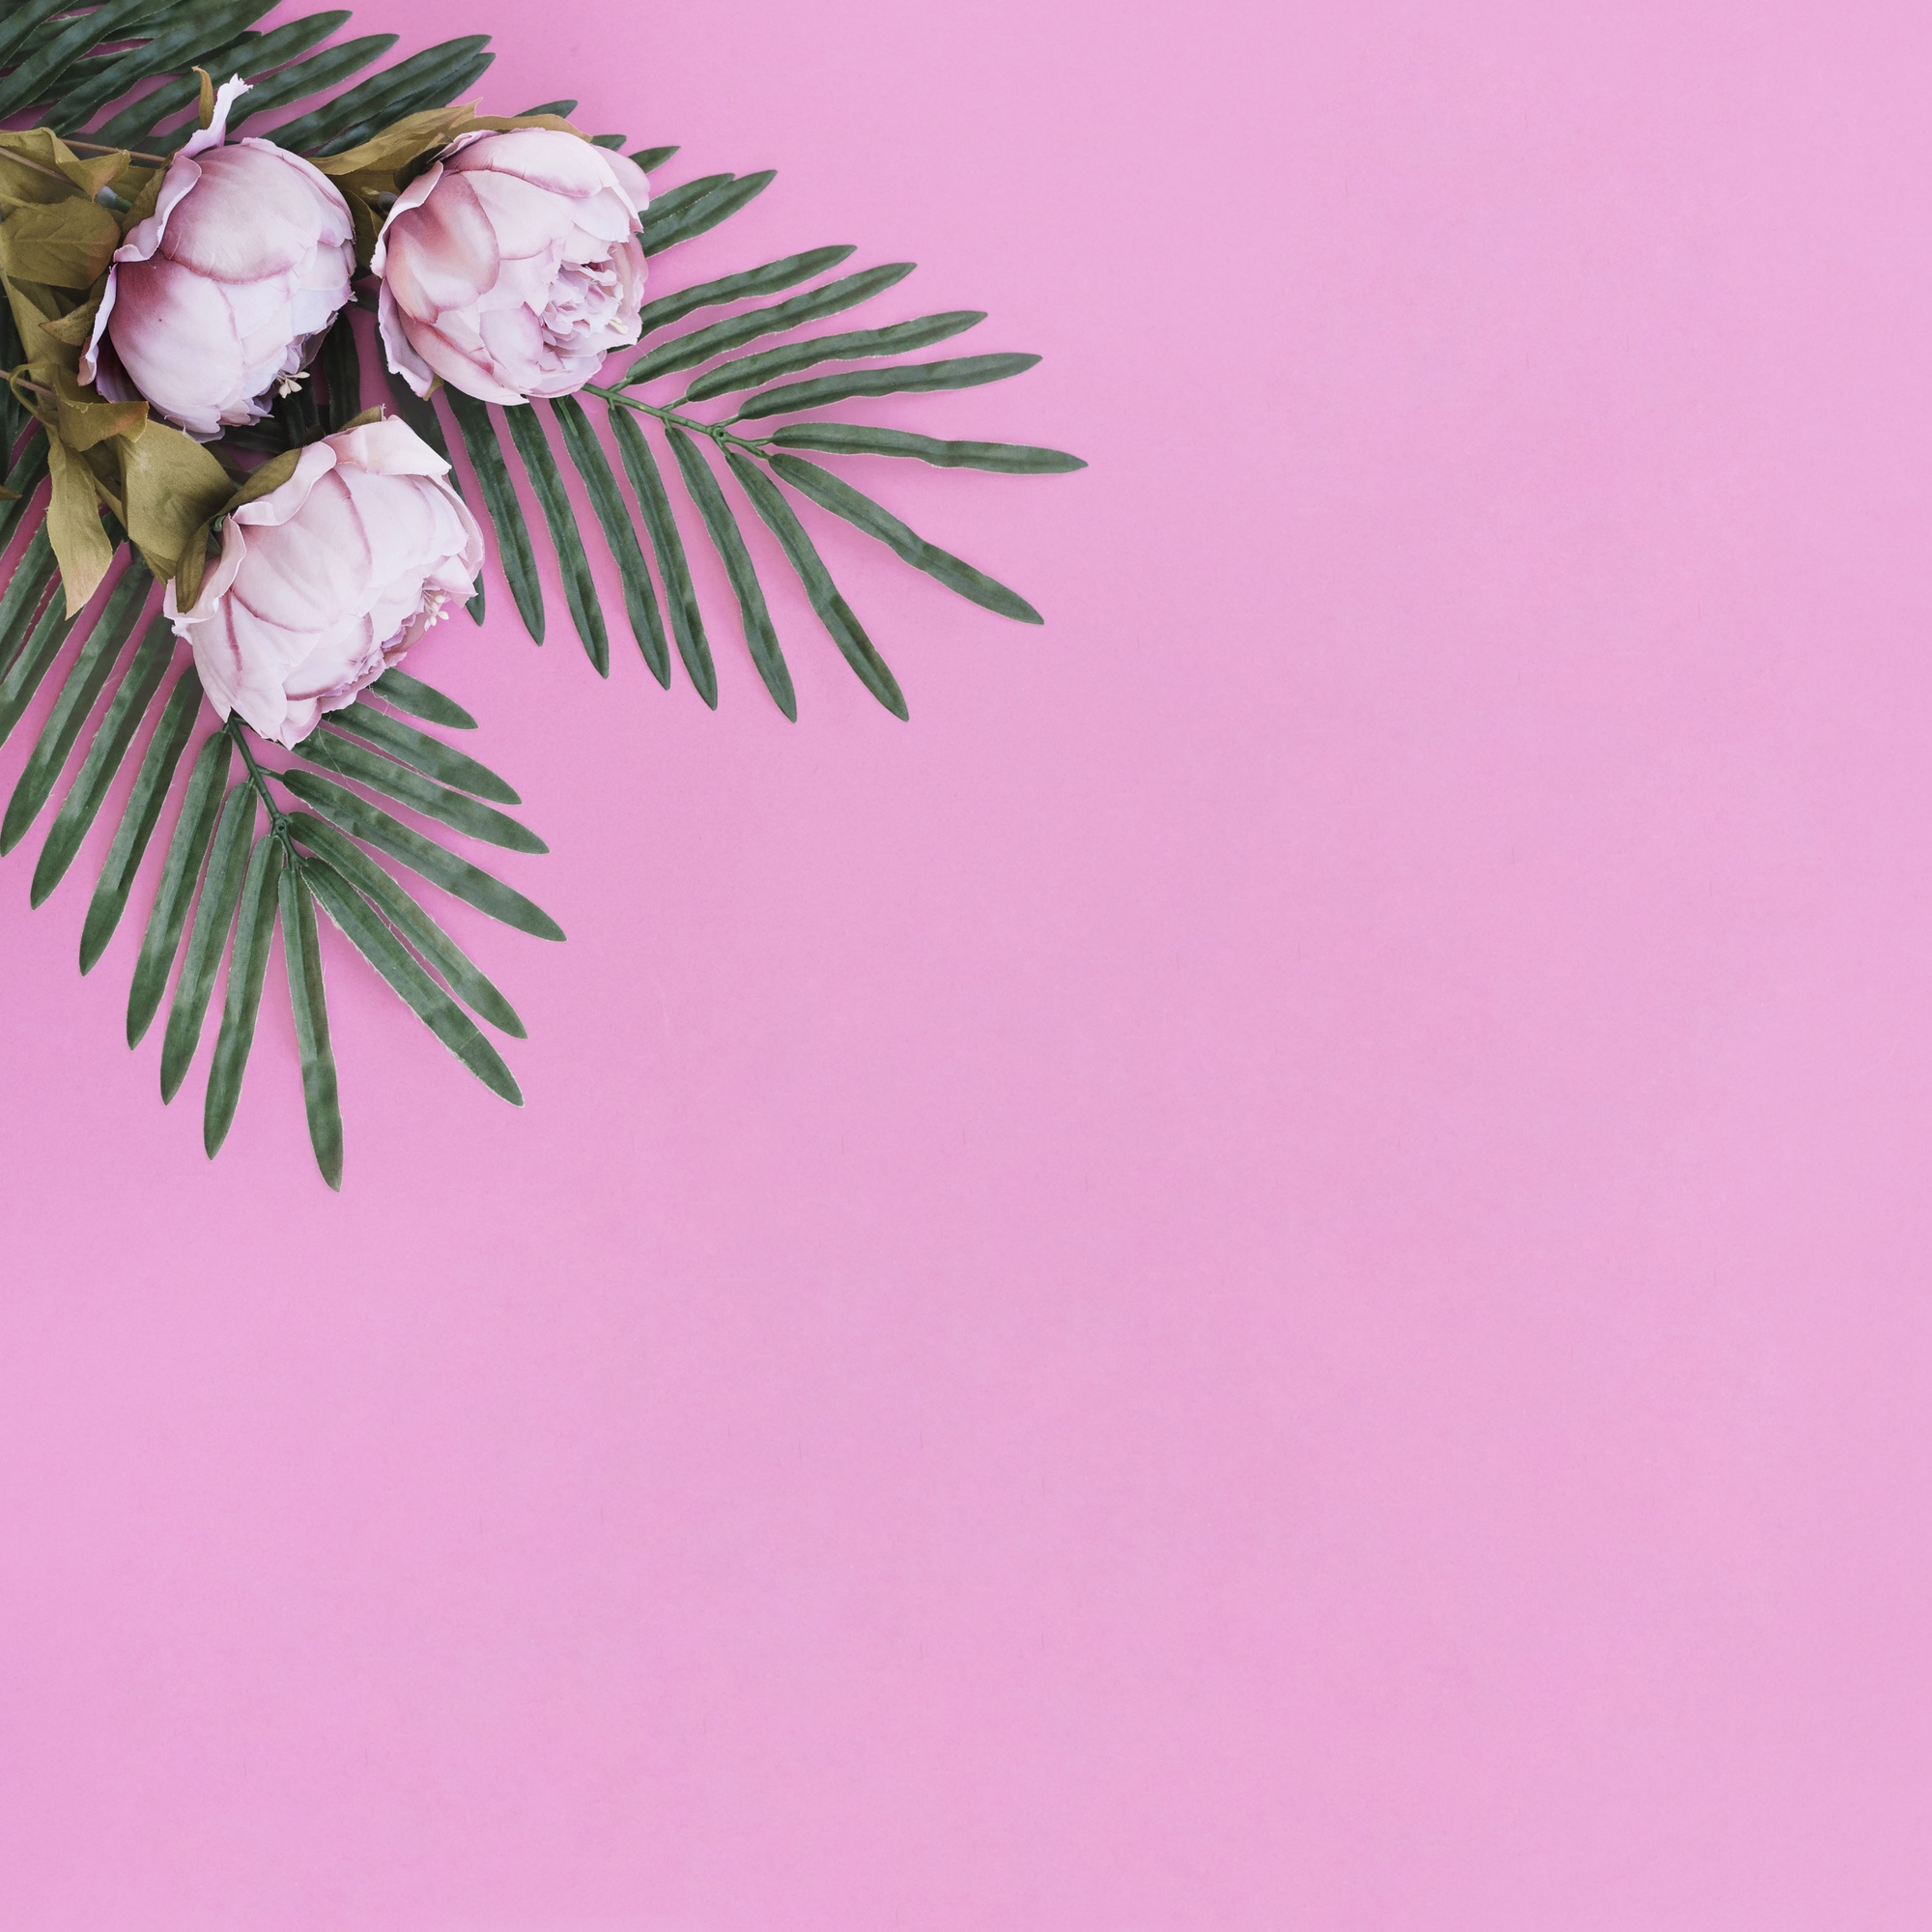 Flowers with leaves palm on pink frame background